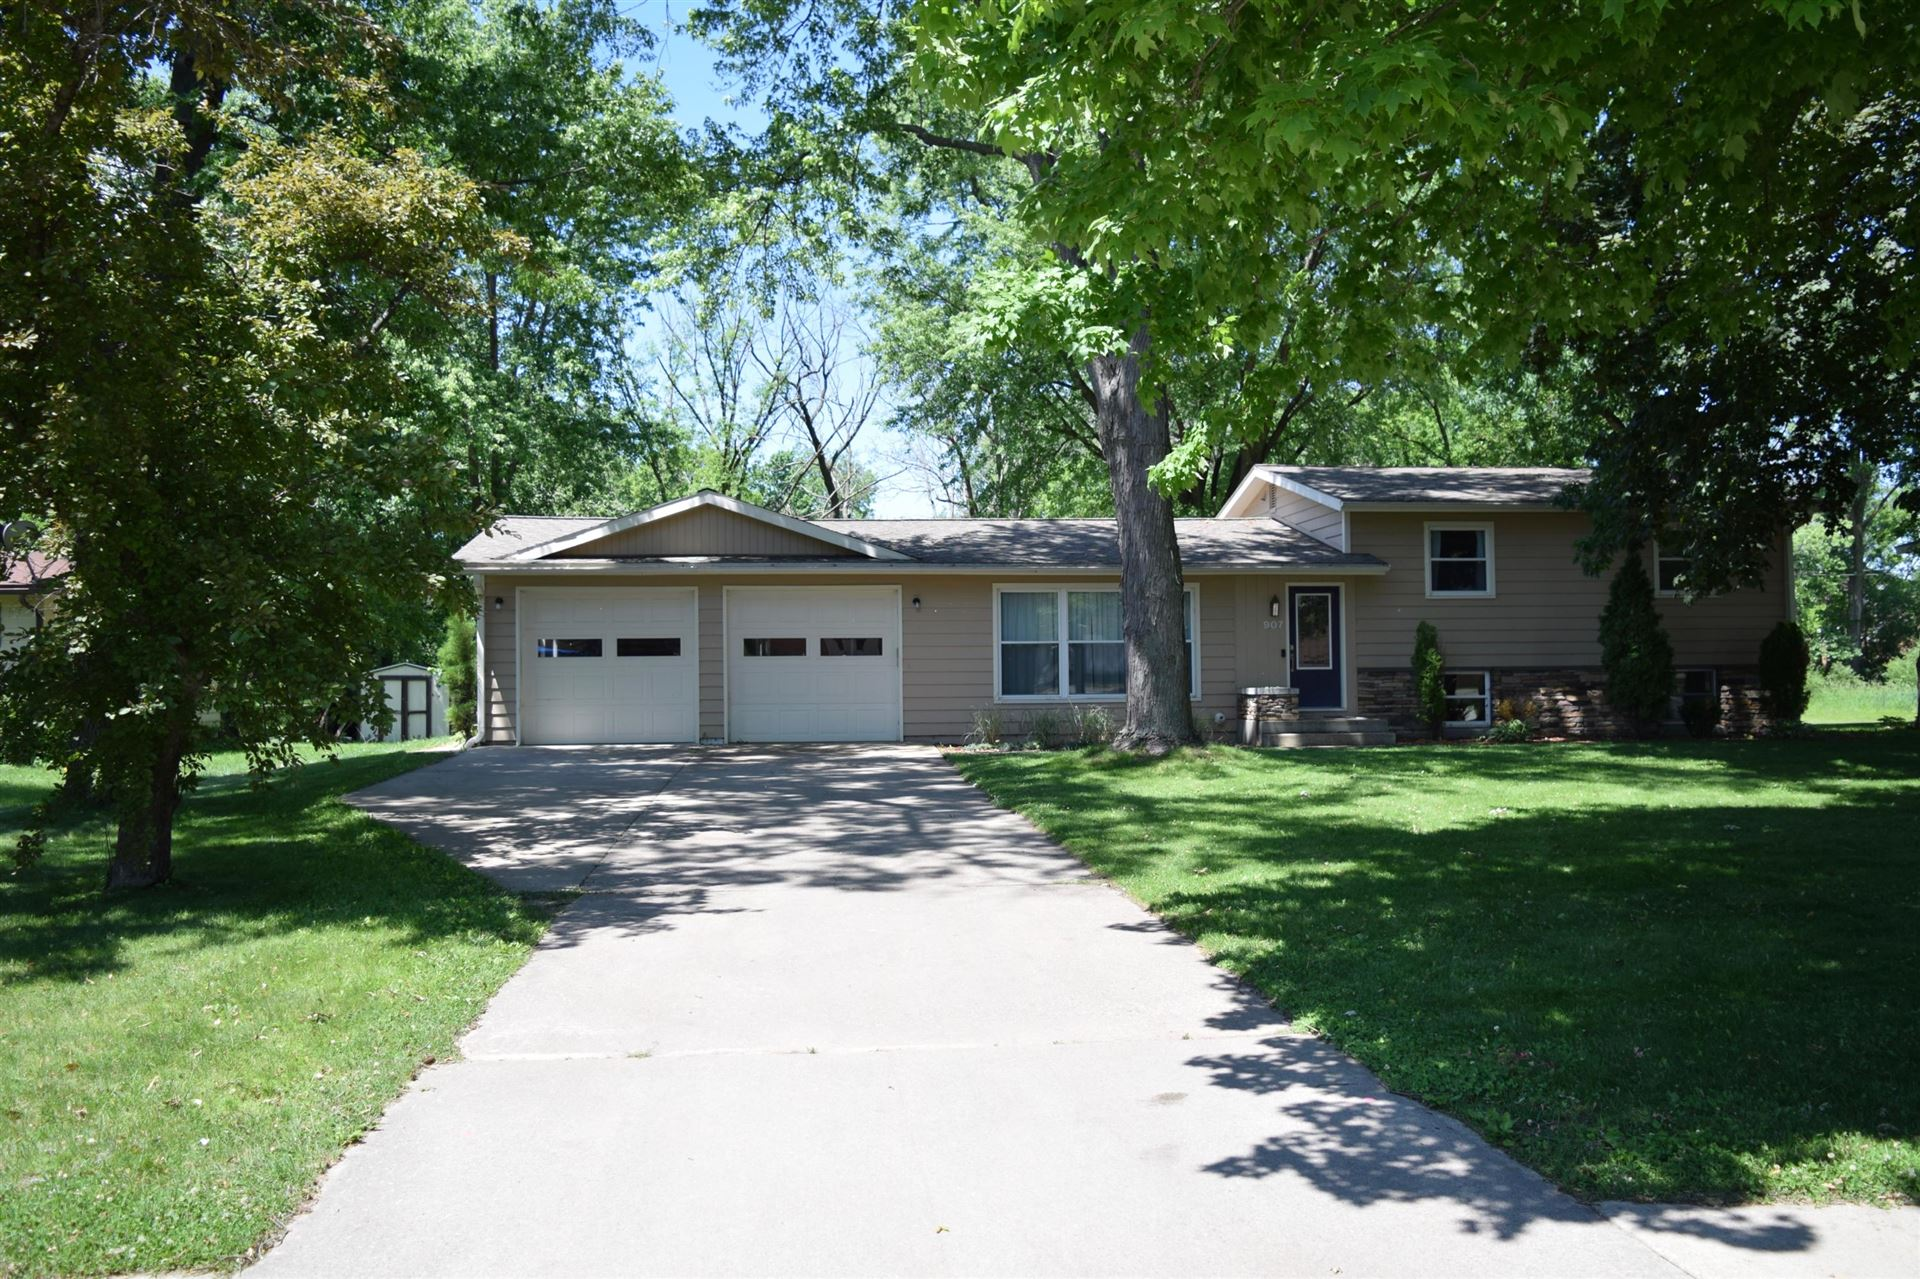 907 Butts Ave, Tomah, WI 54660 - MLS#: 1693728